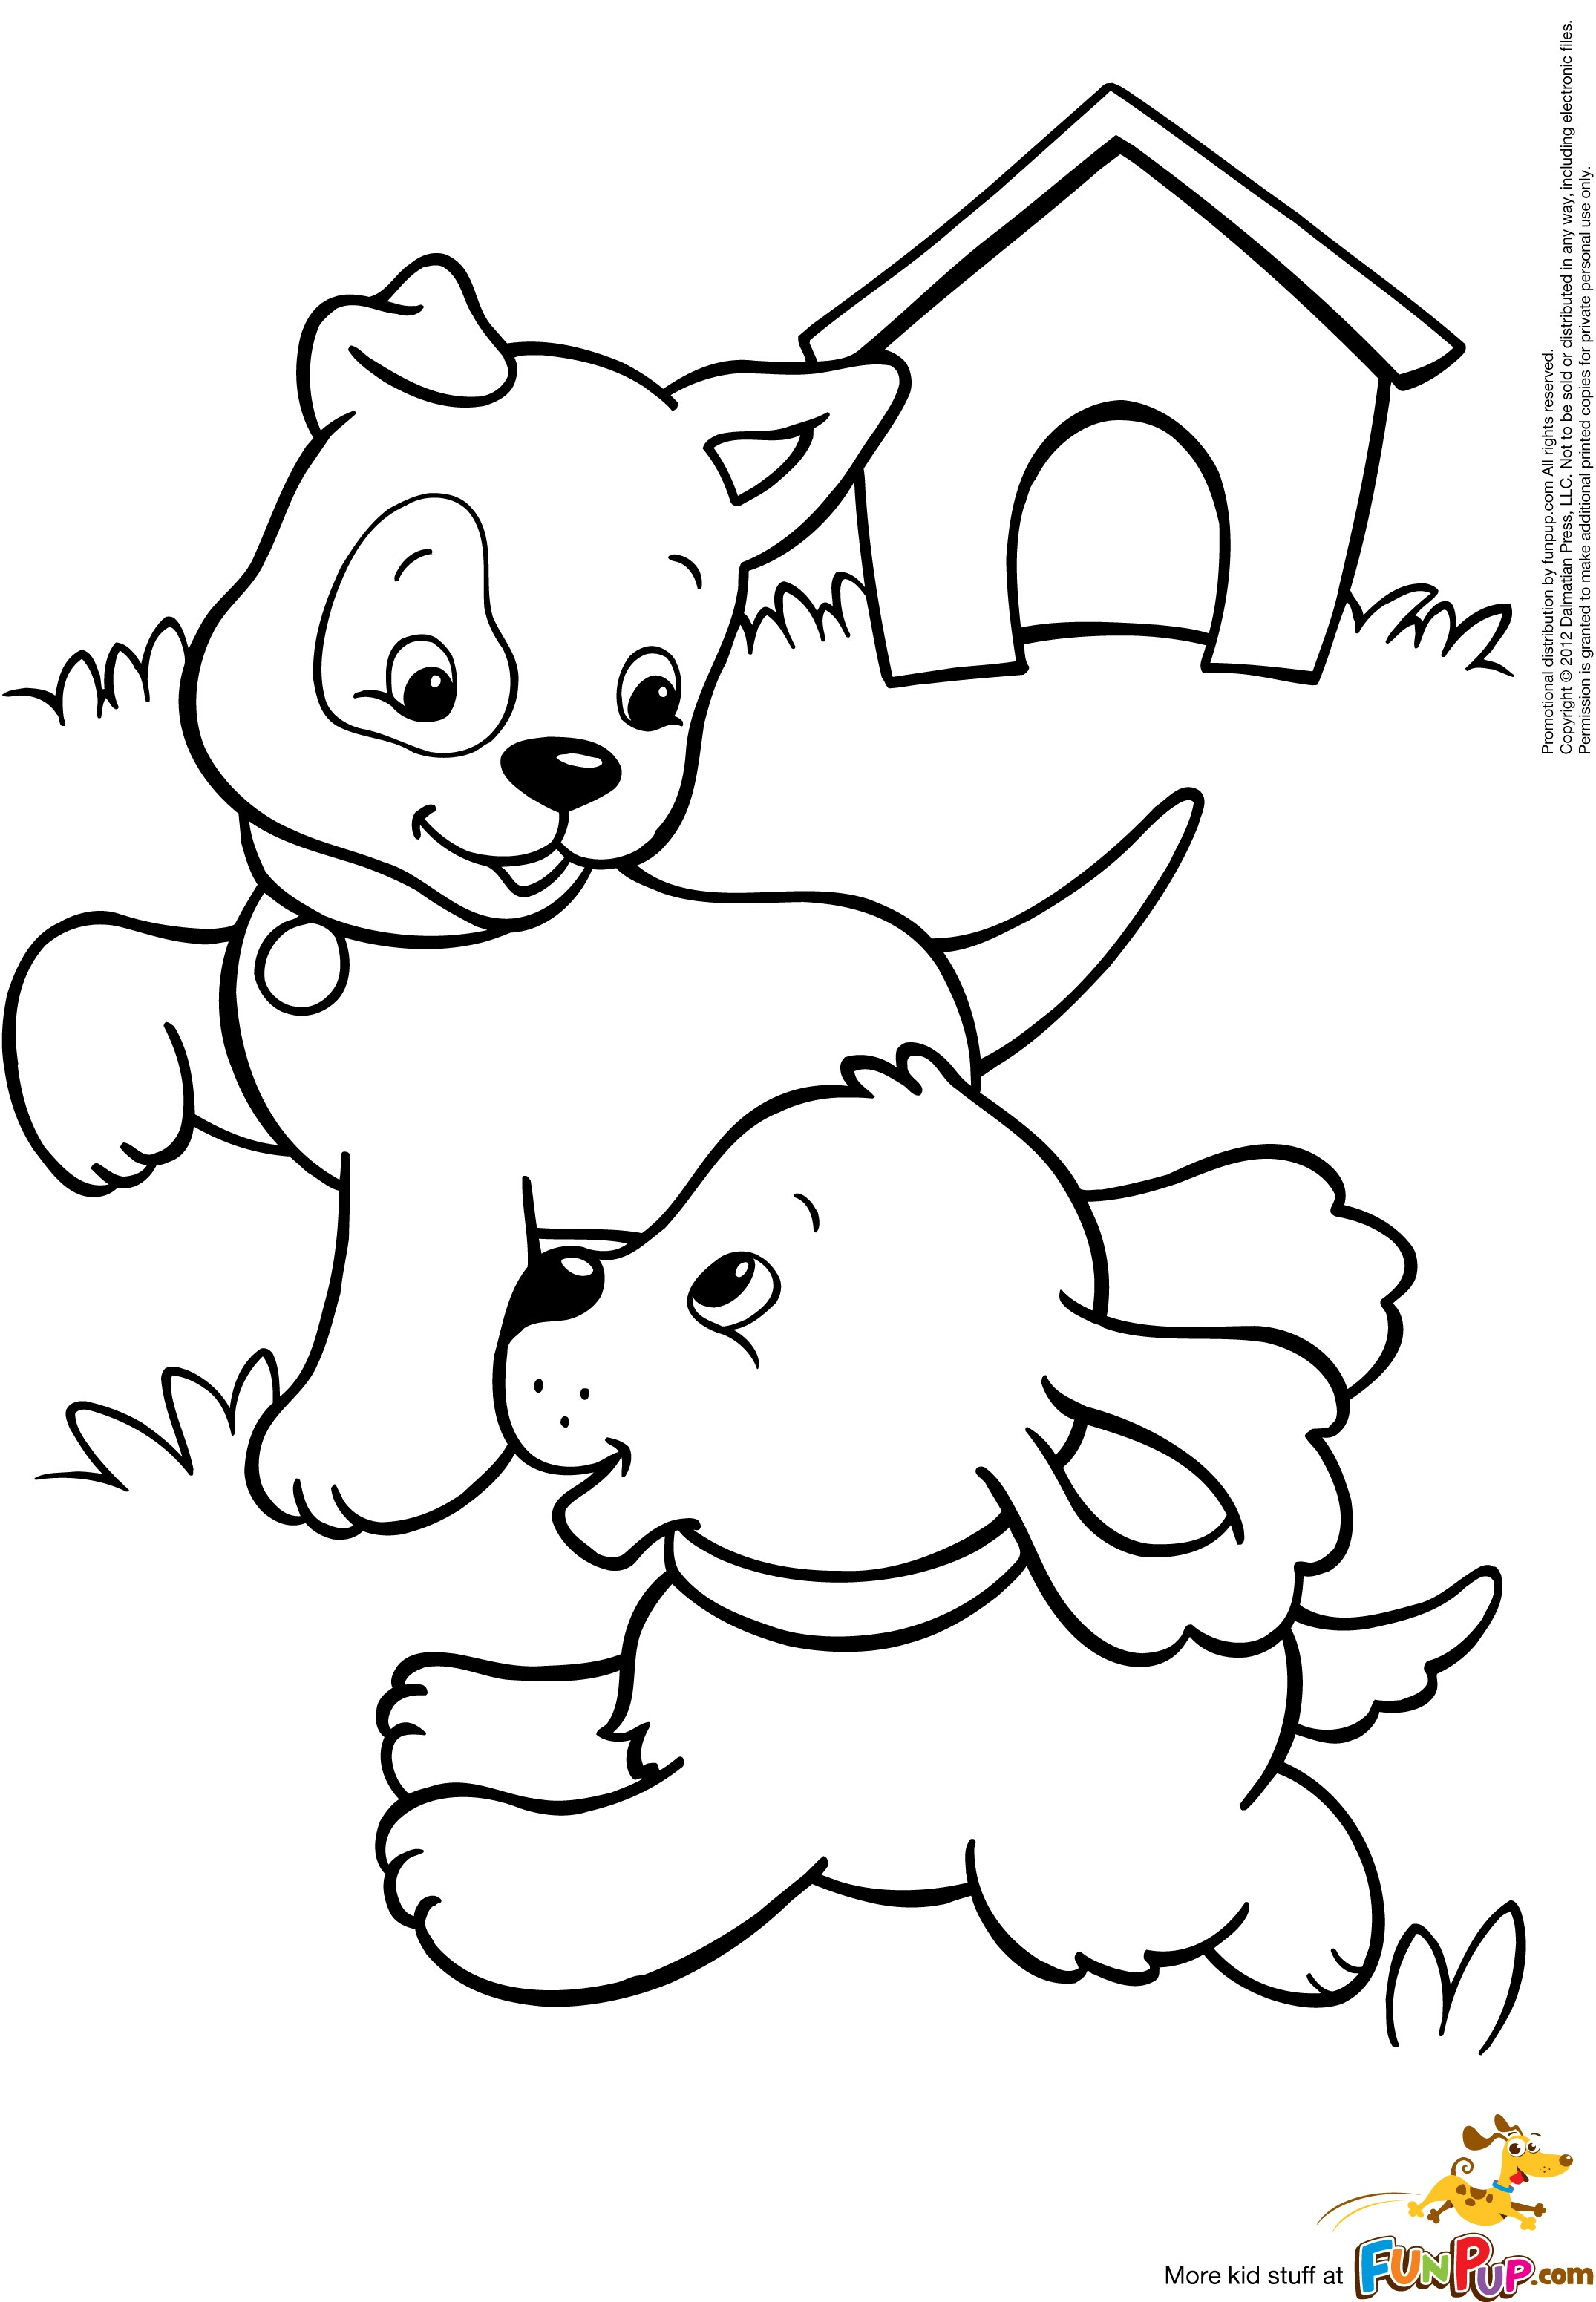 2150x3101 Popular Puppies Coloring Pages At Cute Puppy O